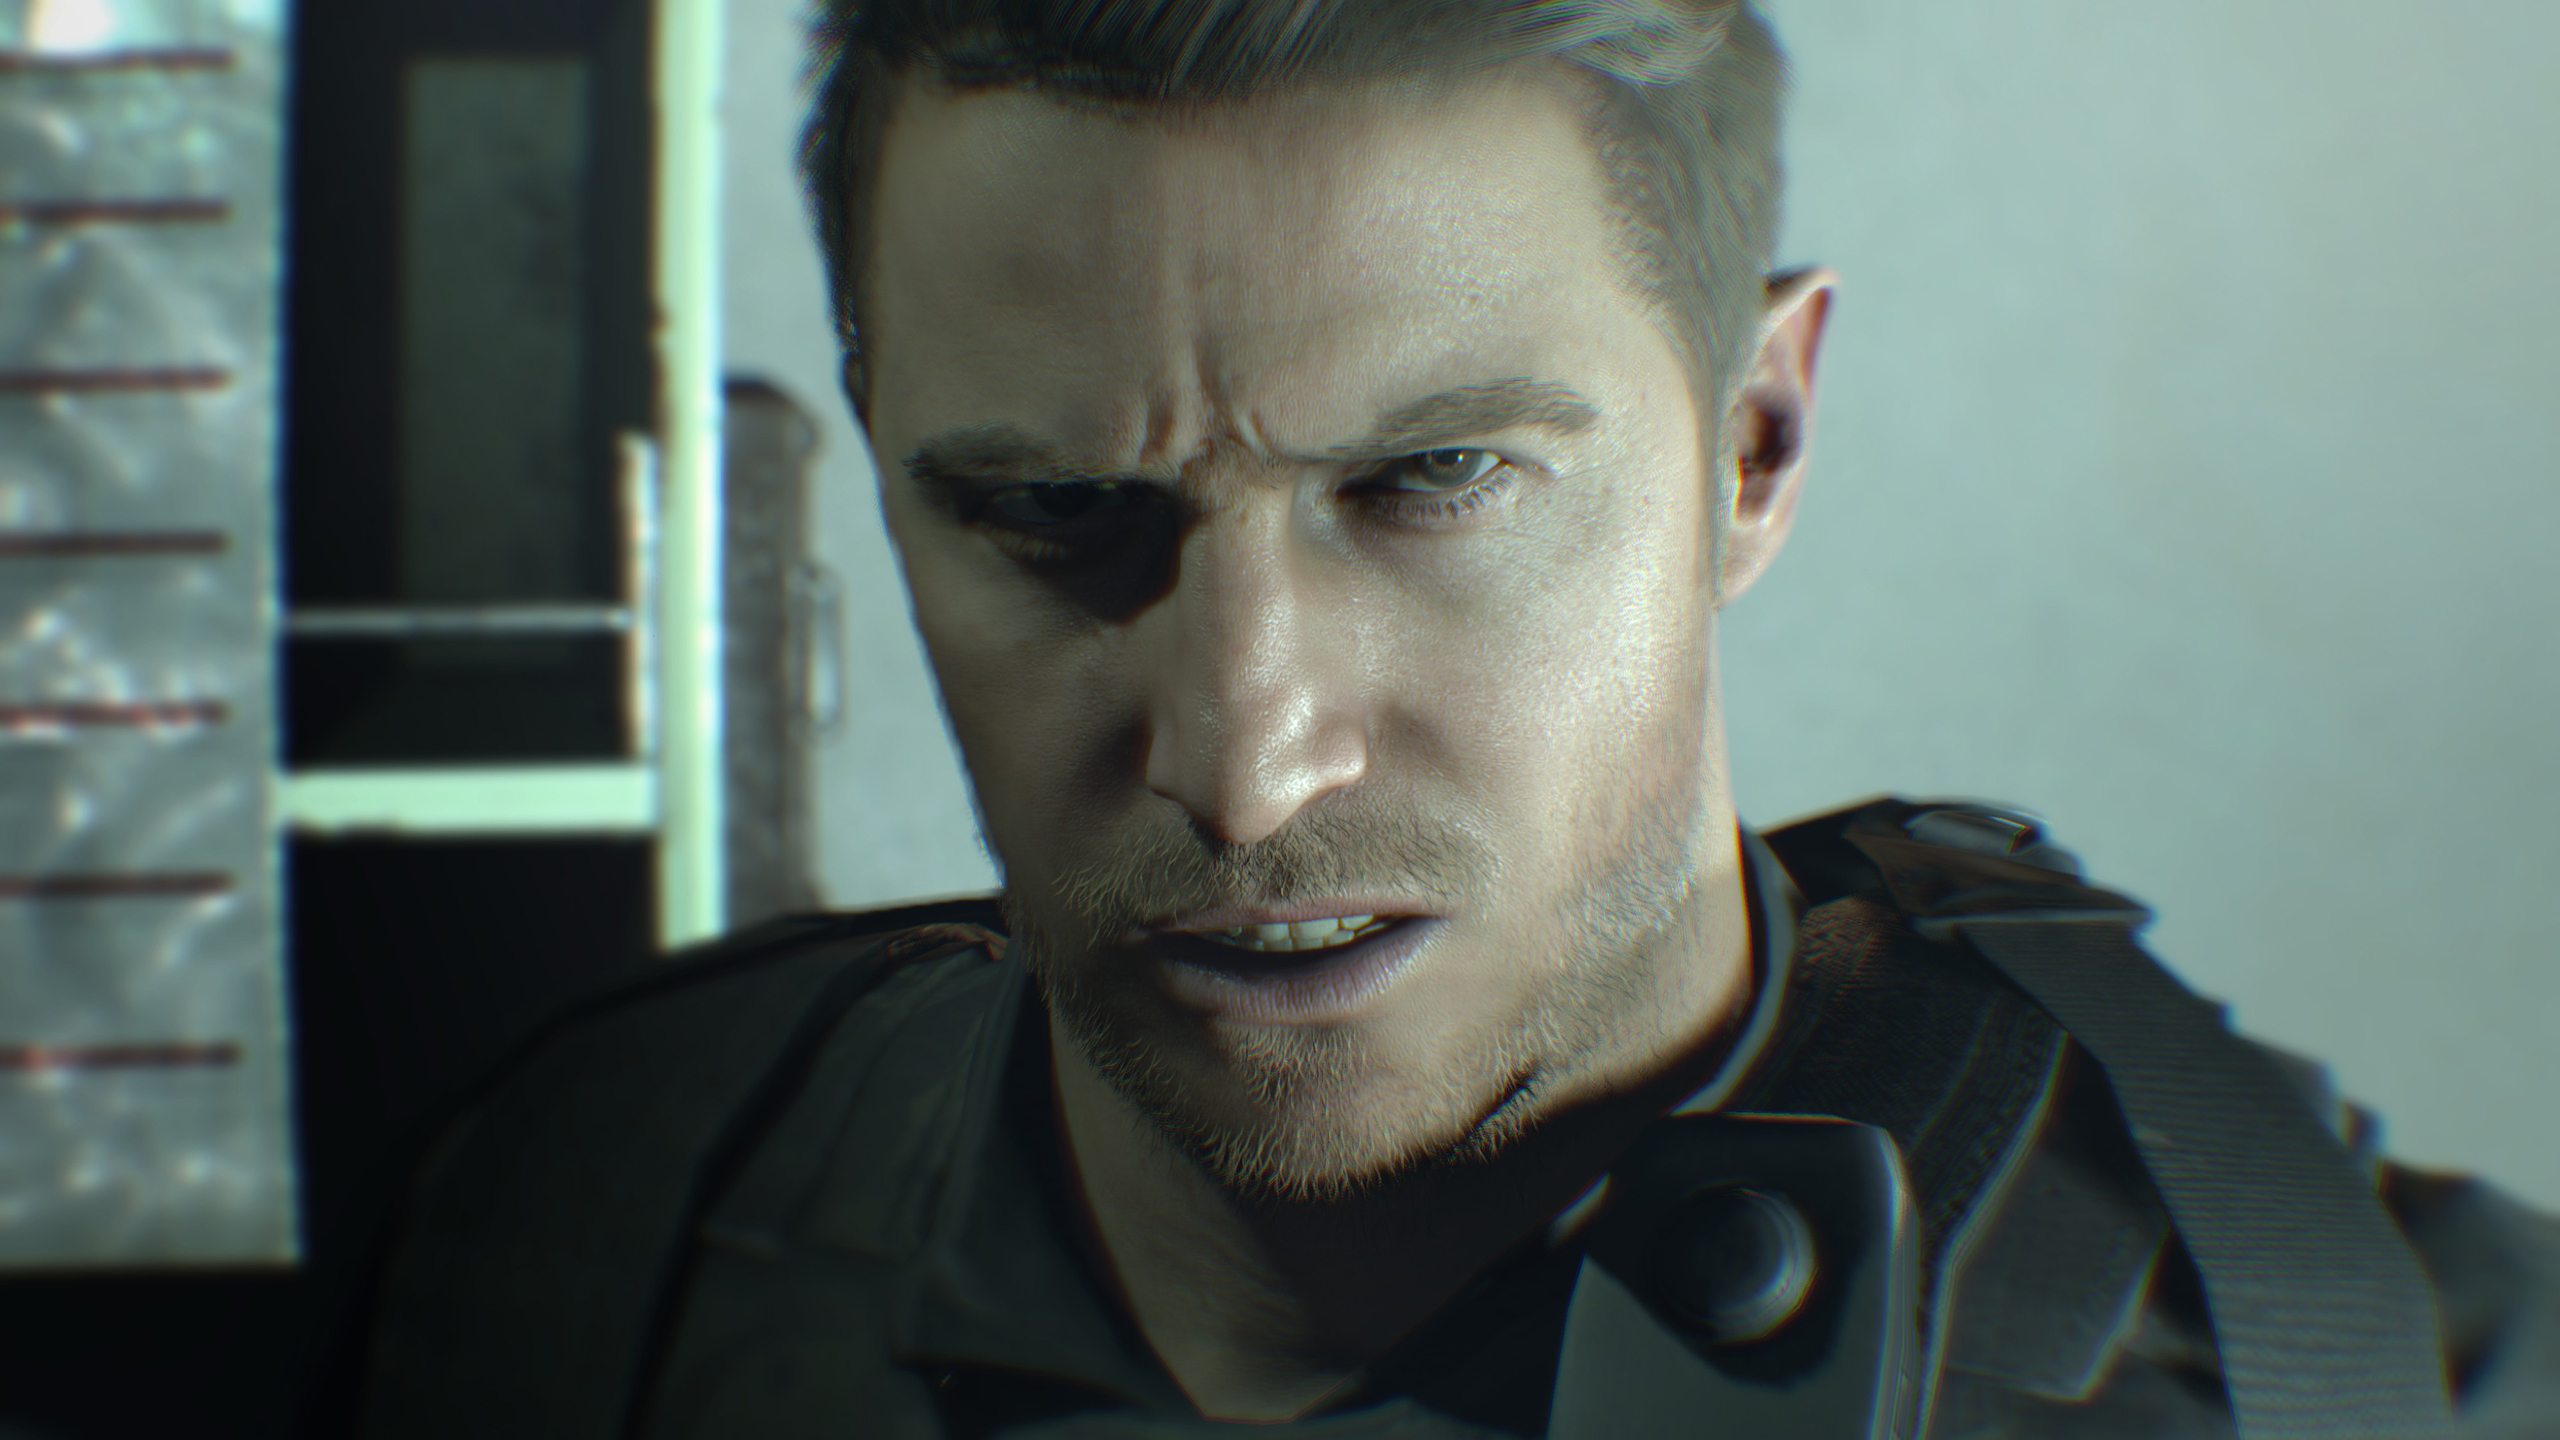 Chris Redfield confirmado no DLC de Resident Evil 7